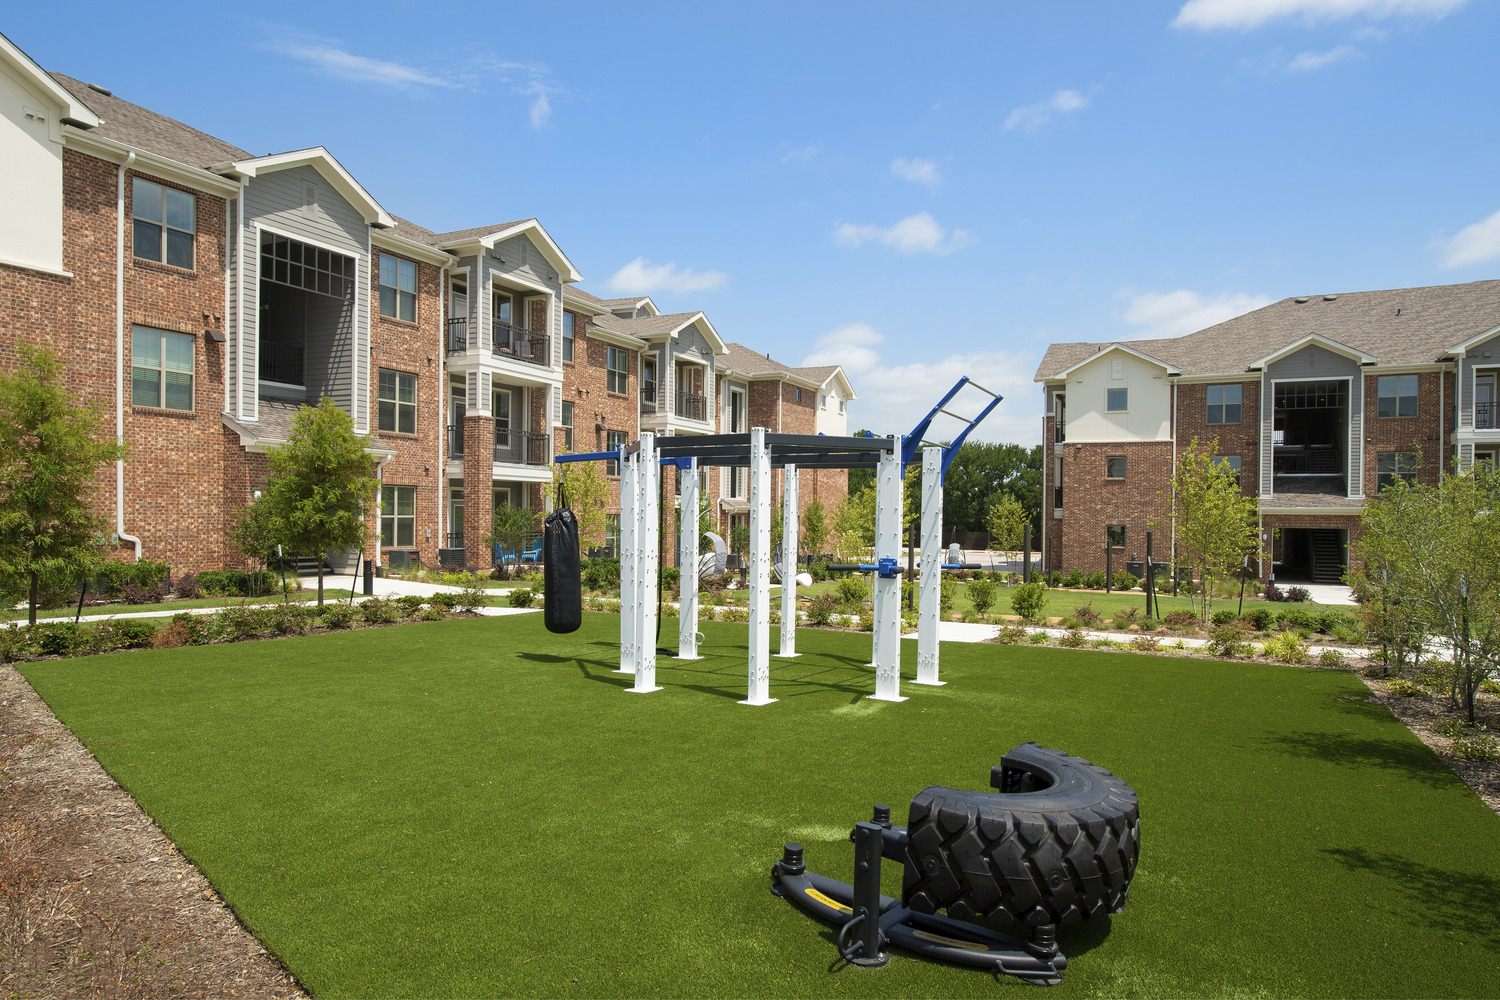 CBG builds Copper Ridge Phase III, a Three-Story, 168-Unit Apartment Community Across Eight Buildings in Roanoke, TX - Image #5